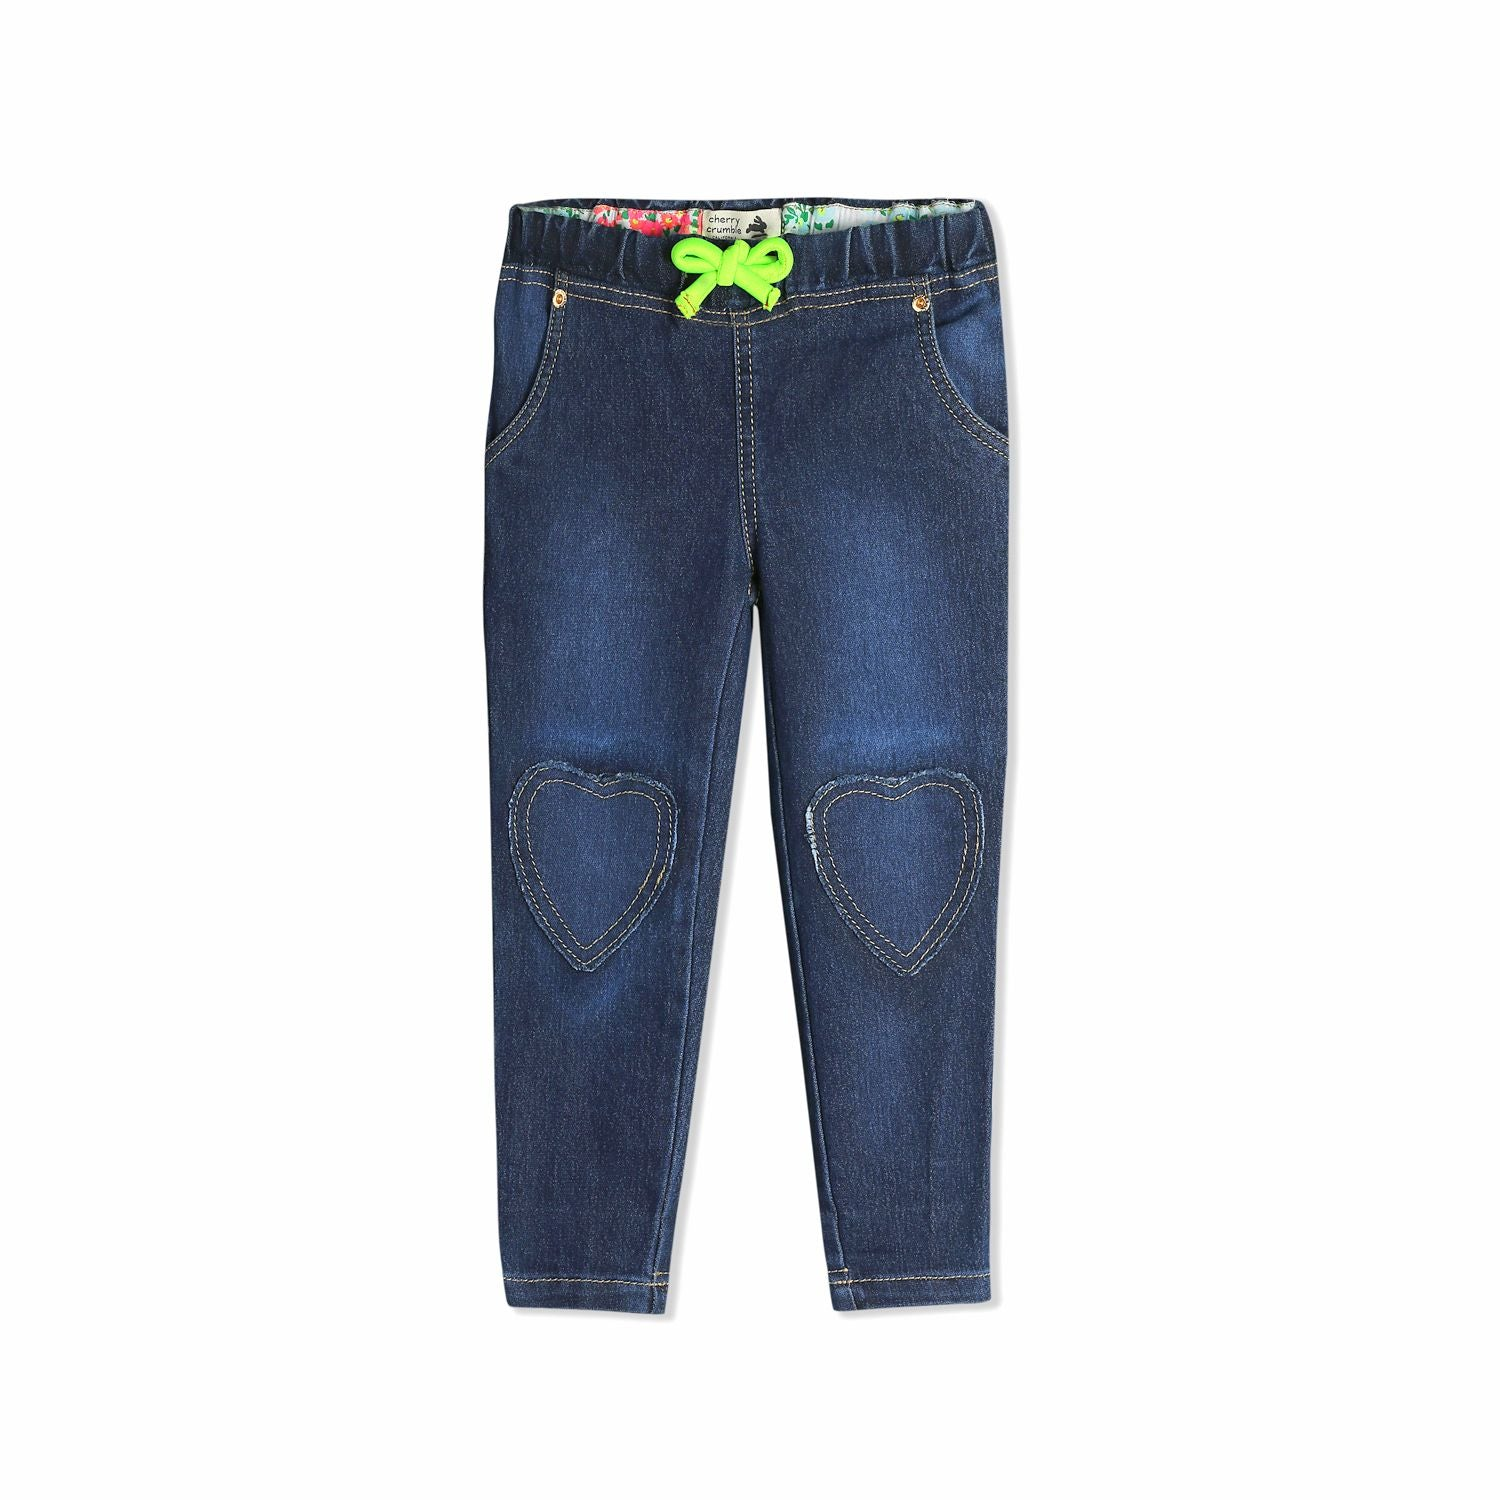 Heart Applique Jeans for Girls